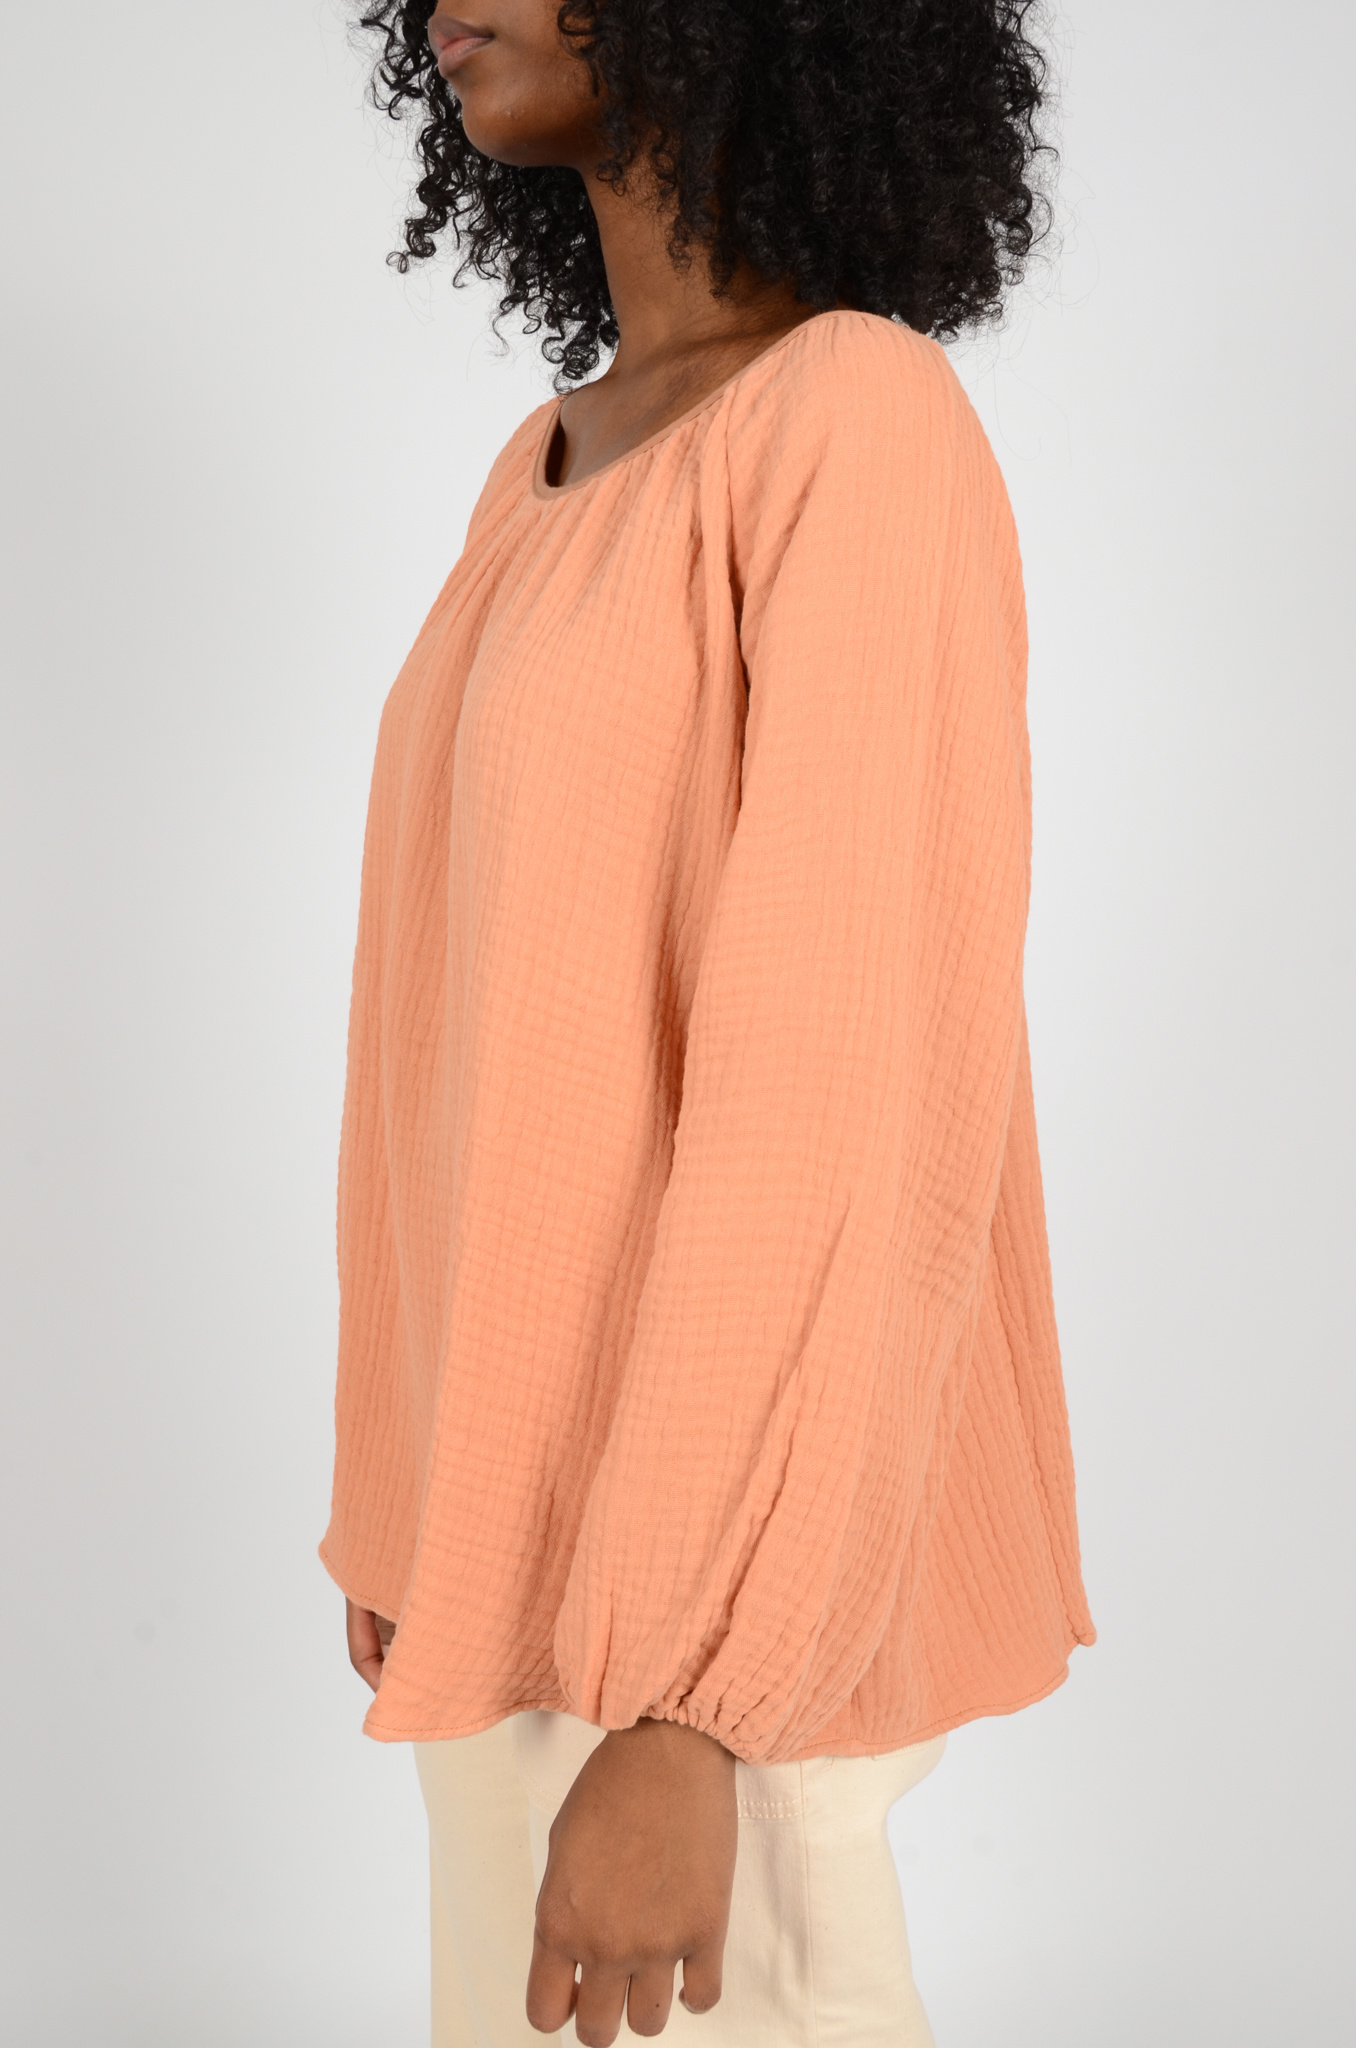 MORNING BLOUSE IN PEACH-3